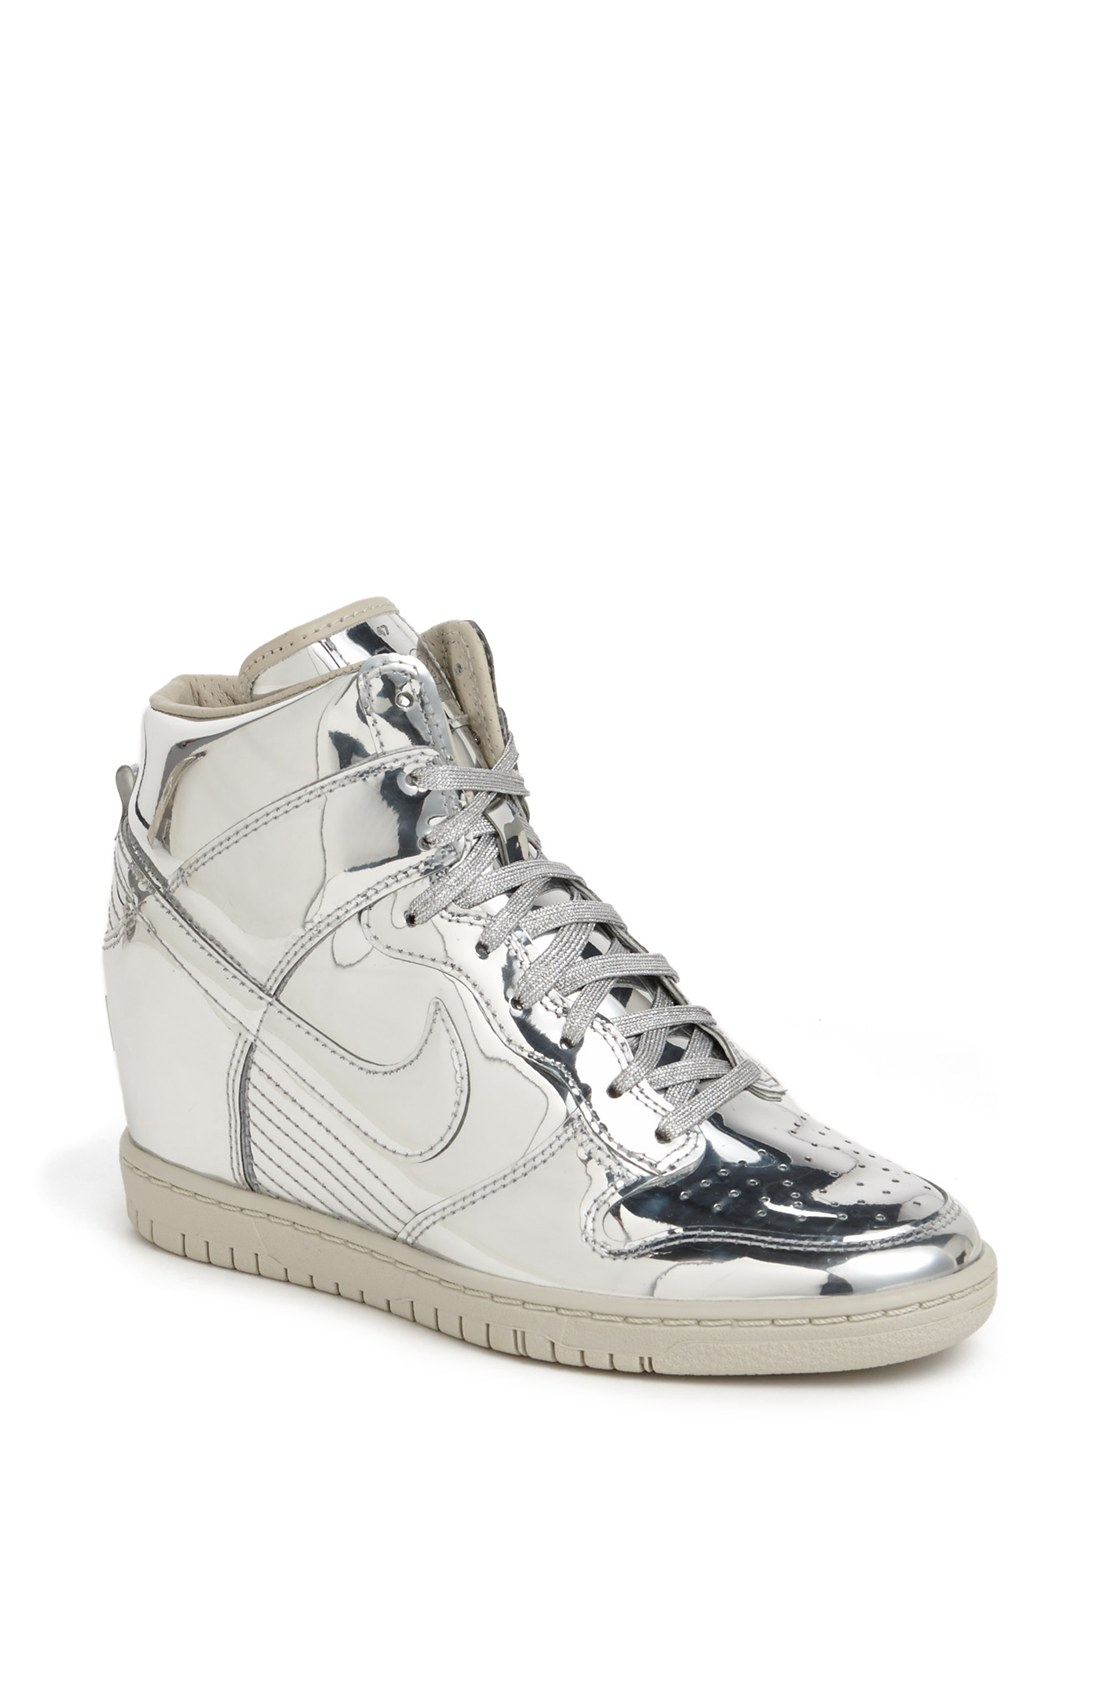 nike dunk sky hi hidden wedge sneaker in silver metallic silver white lyst. Black Bedroom Furniture Sets. Home Design Ideas